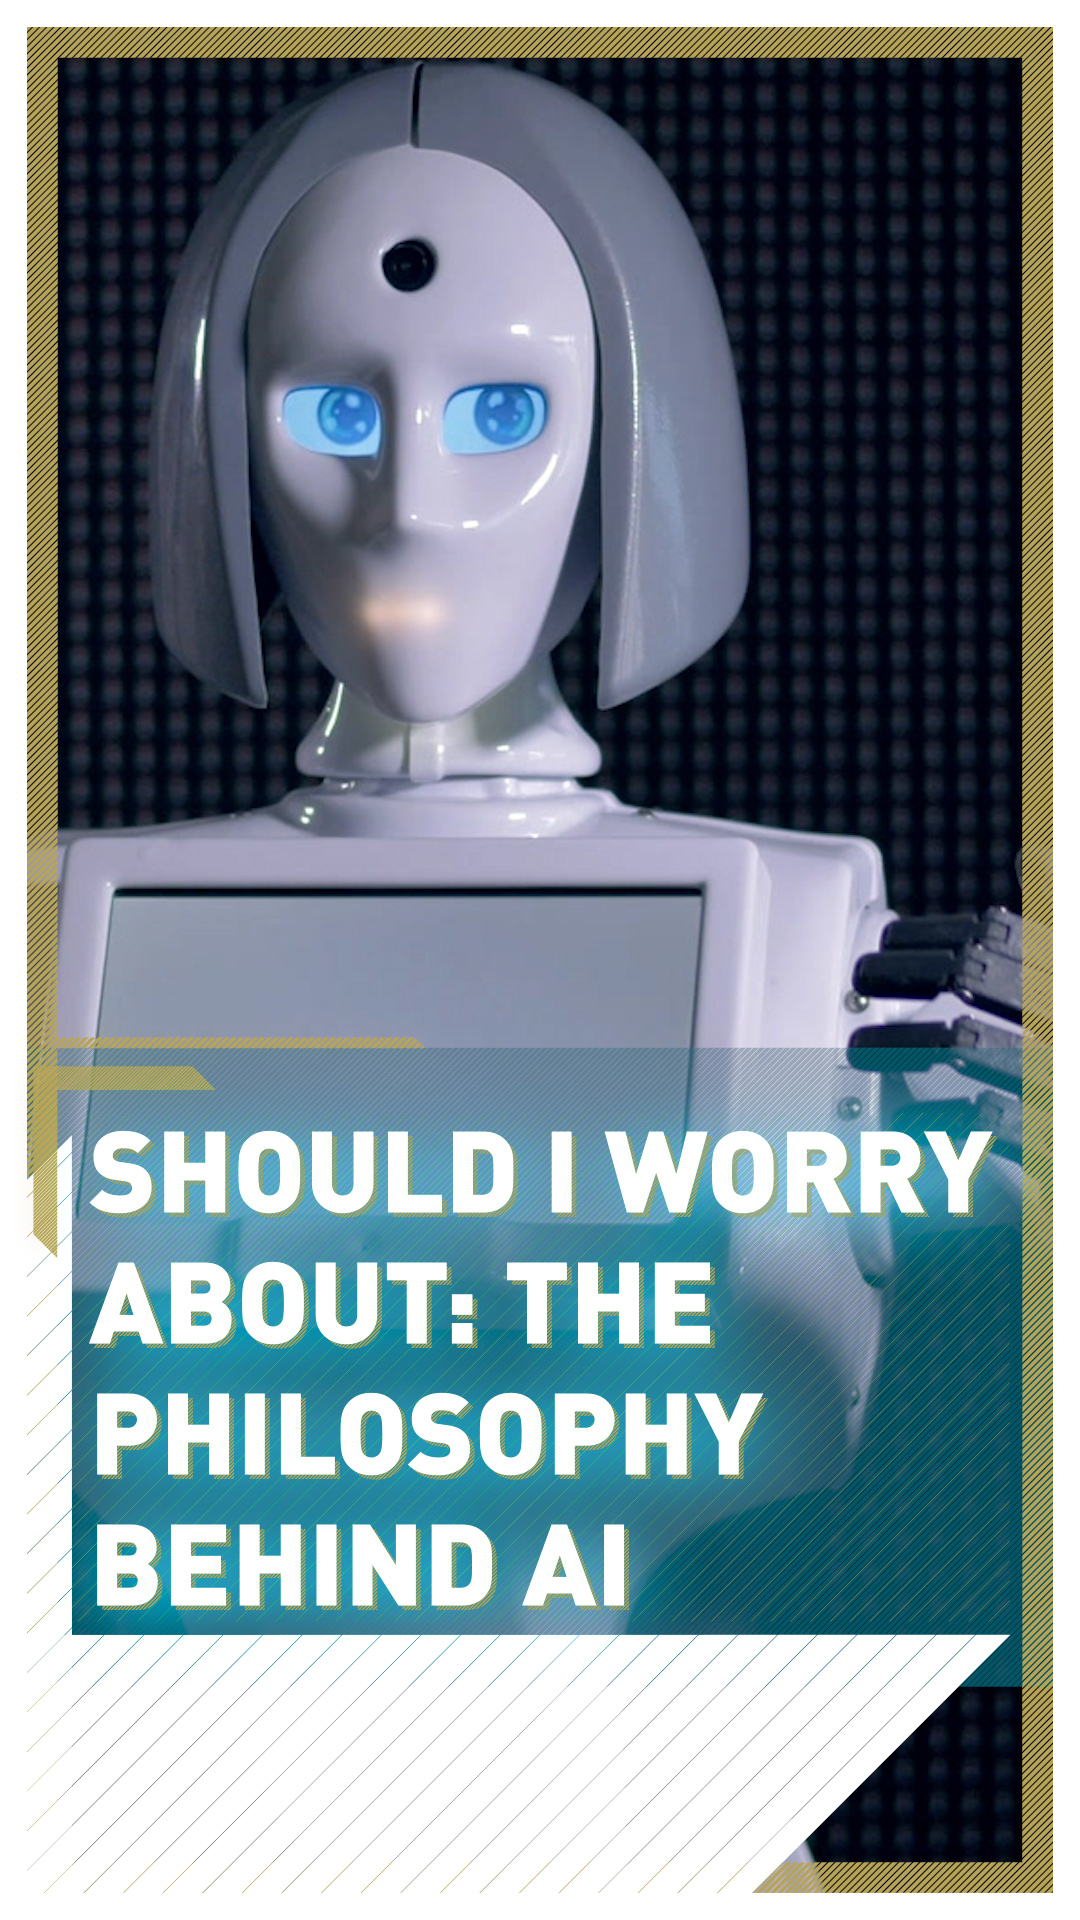 Should I Worry About... the philosophy behind AI?